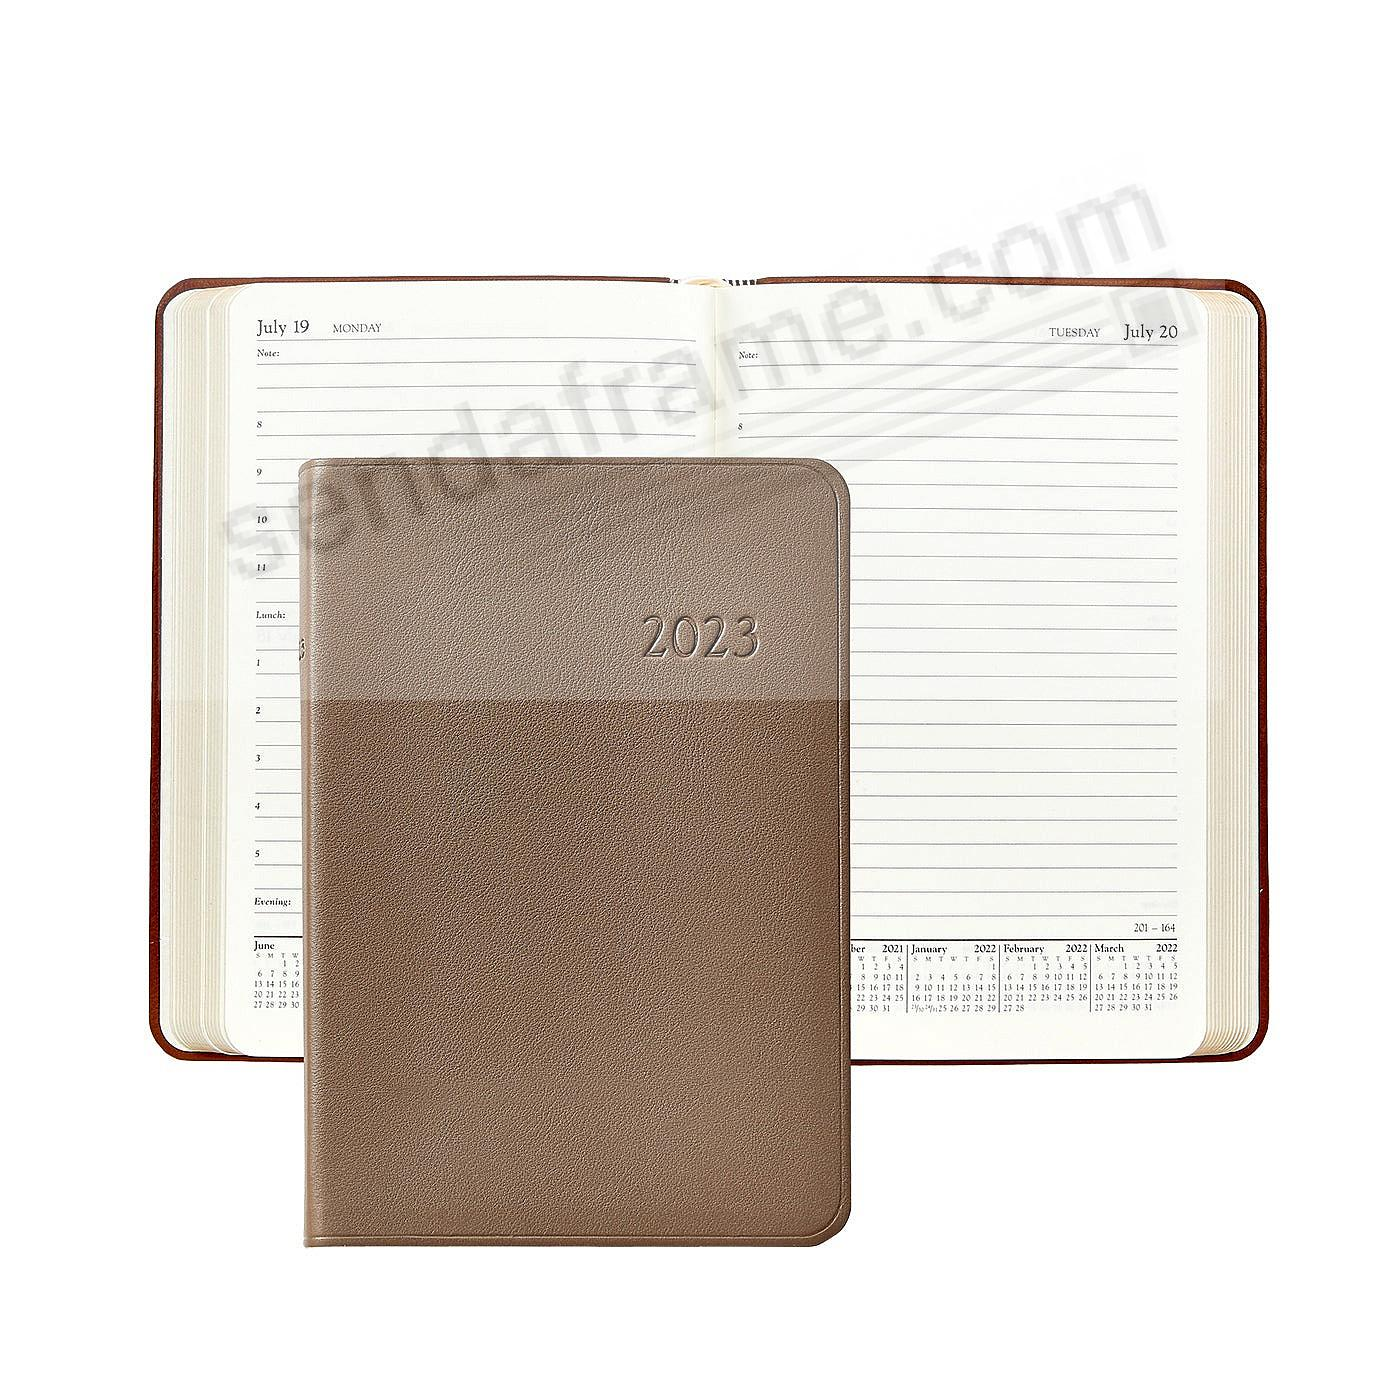 2021 TAUPE Goatskin leather Daily 8-in Journal by Graphic Image™